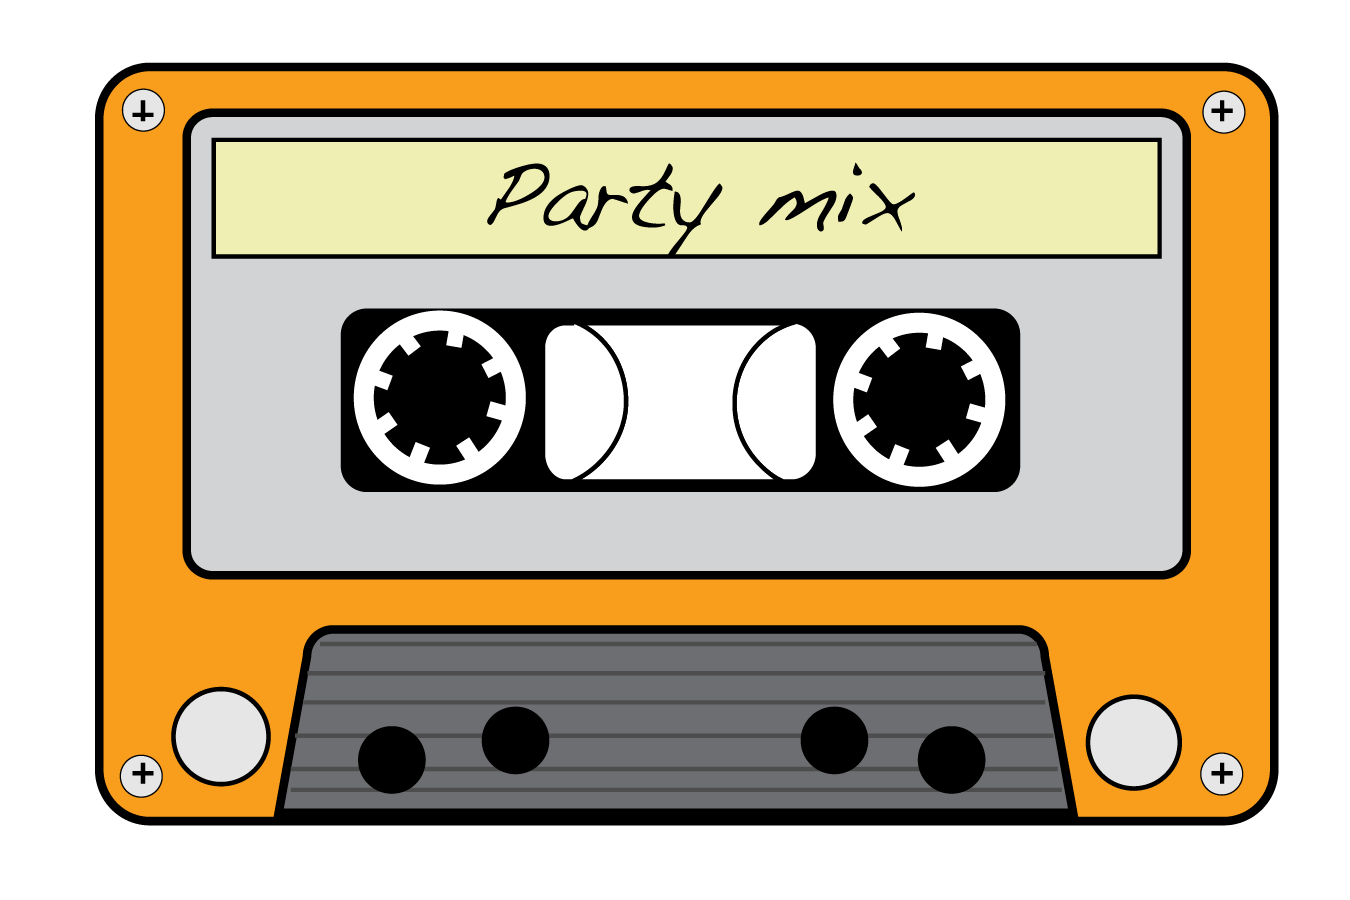 Cassette tape images clipart svg stock neon 80s cassette tapes clipart - Yahoo Image Search Results | Fresh ... svg stock